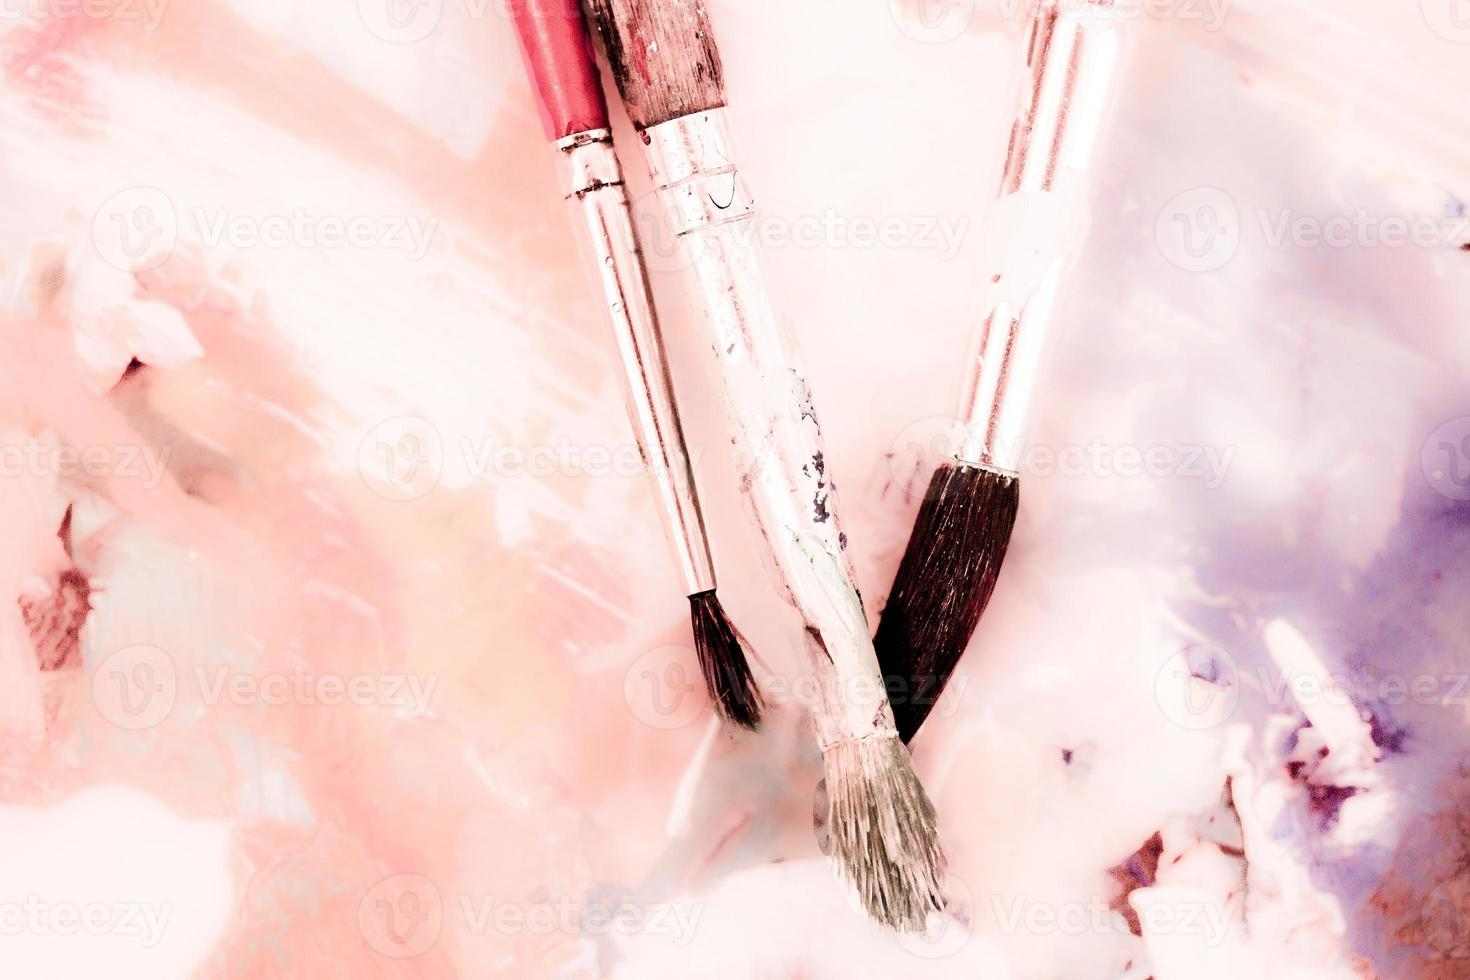 Dreamy photo of paintbrushes and watercolor drawing in pastel colors